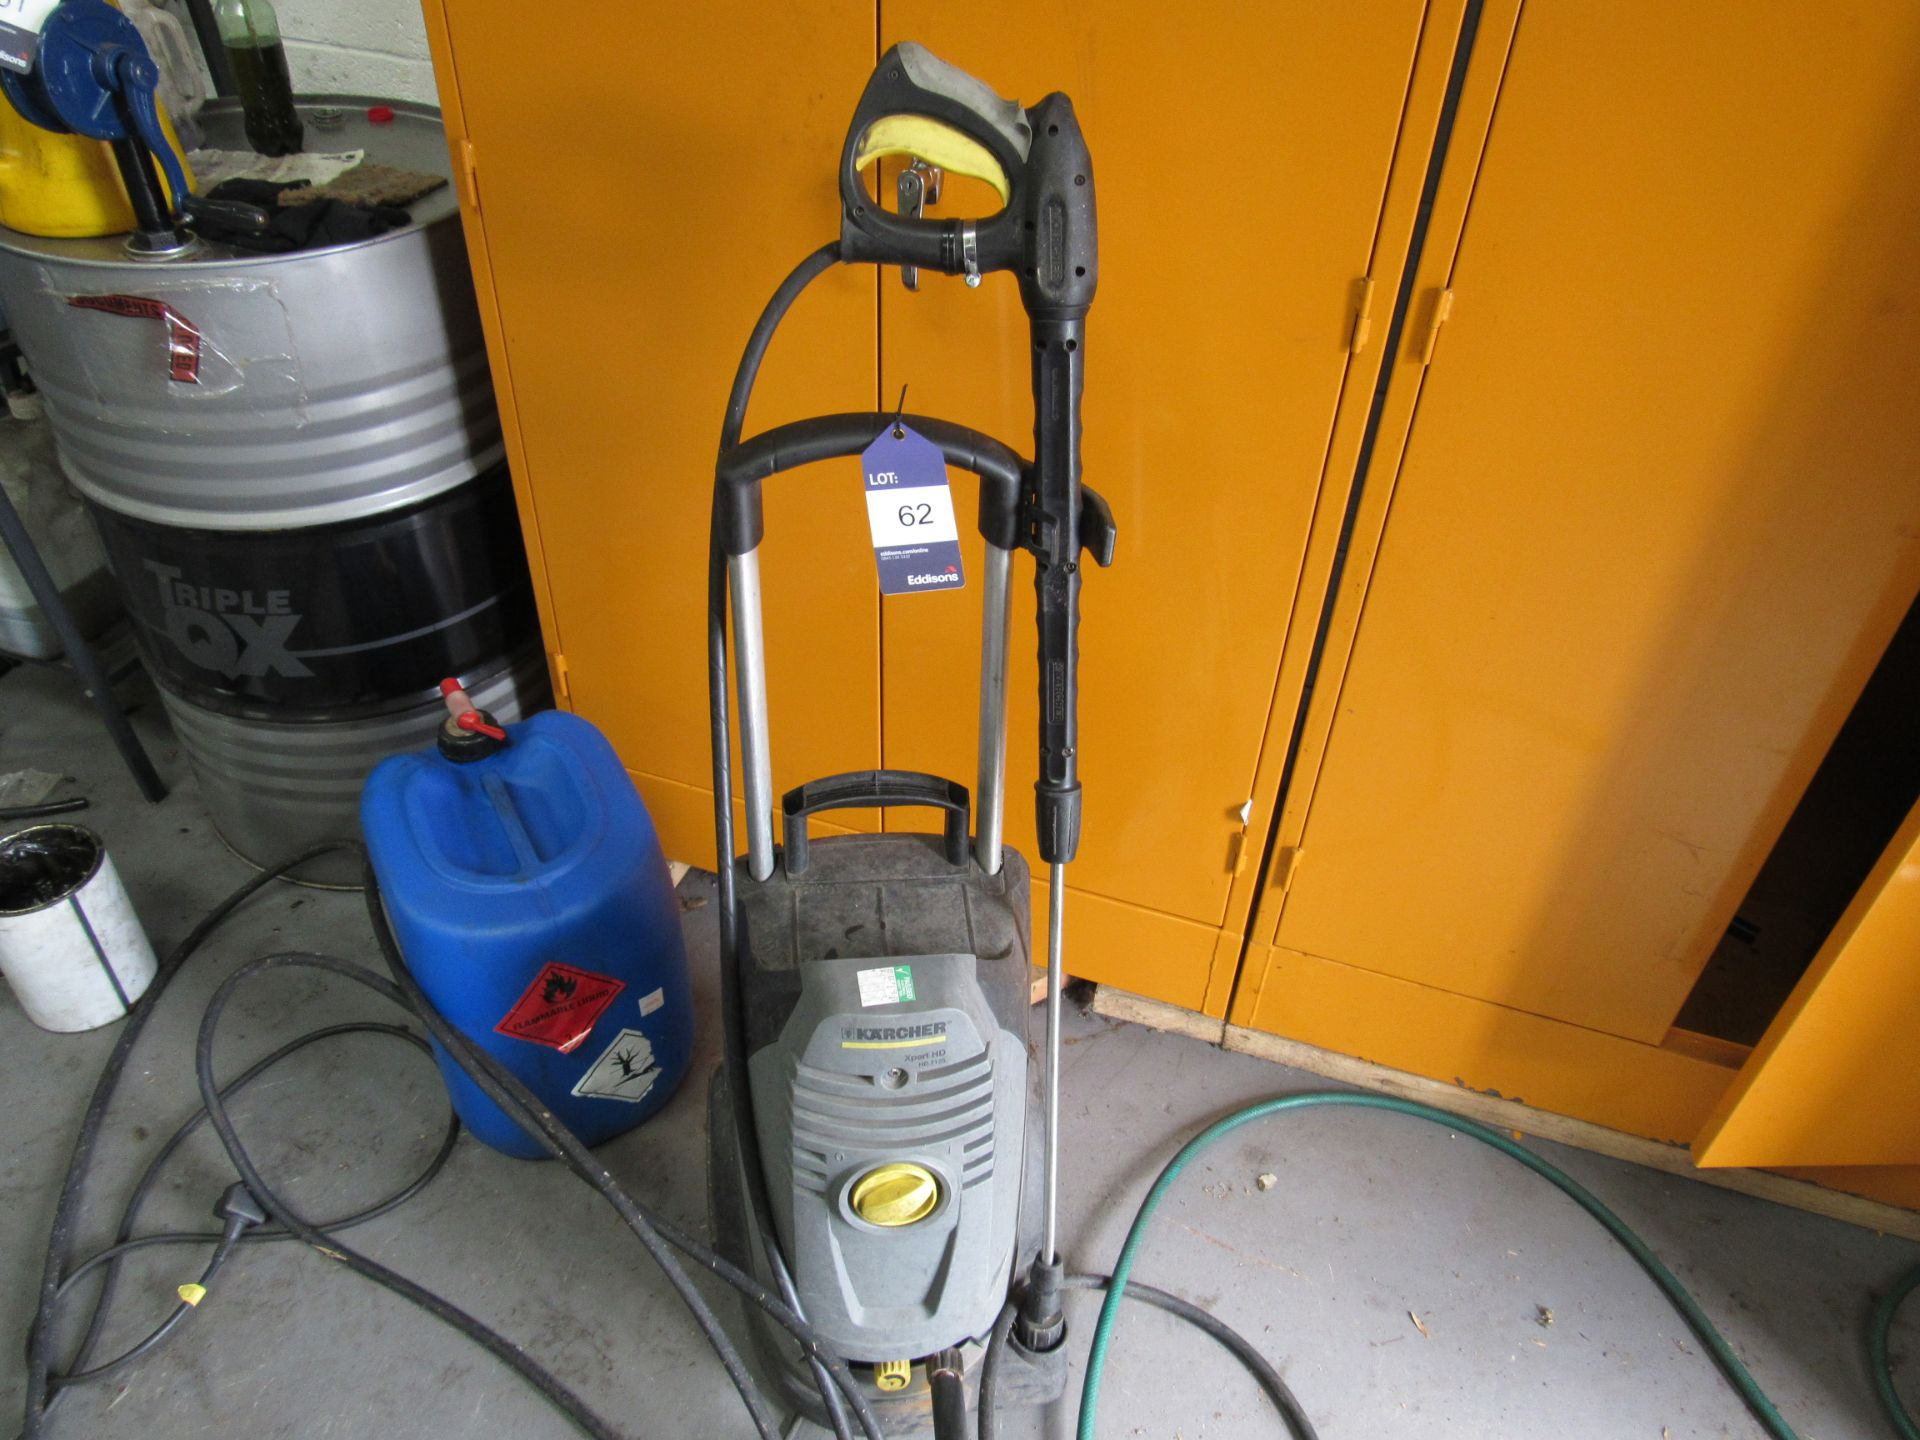 Lot 62 - Karcher Xpert HD 7125 Pressure Washer (Located at Unit 11)